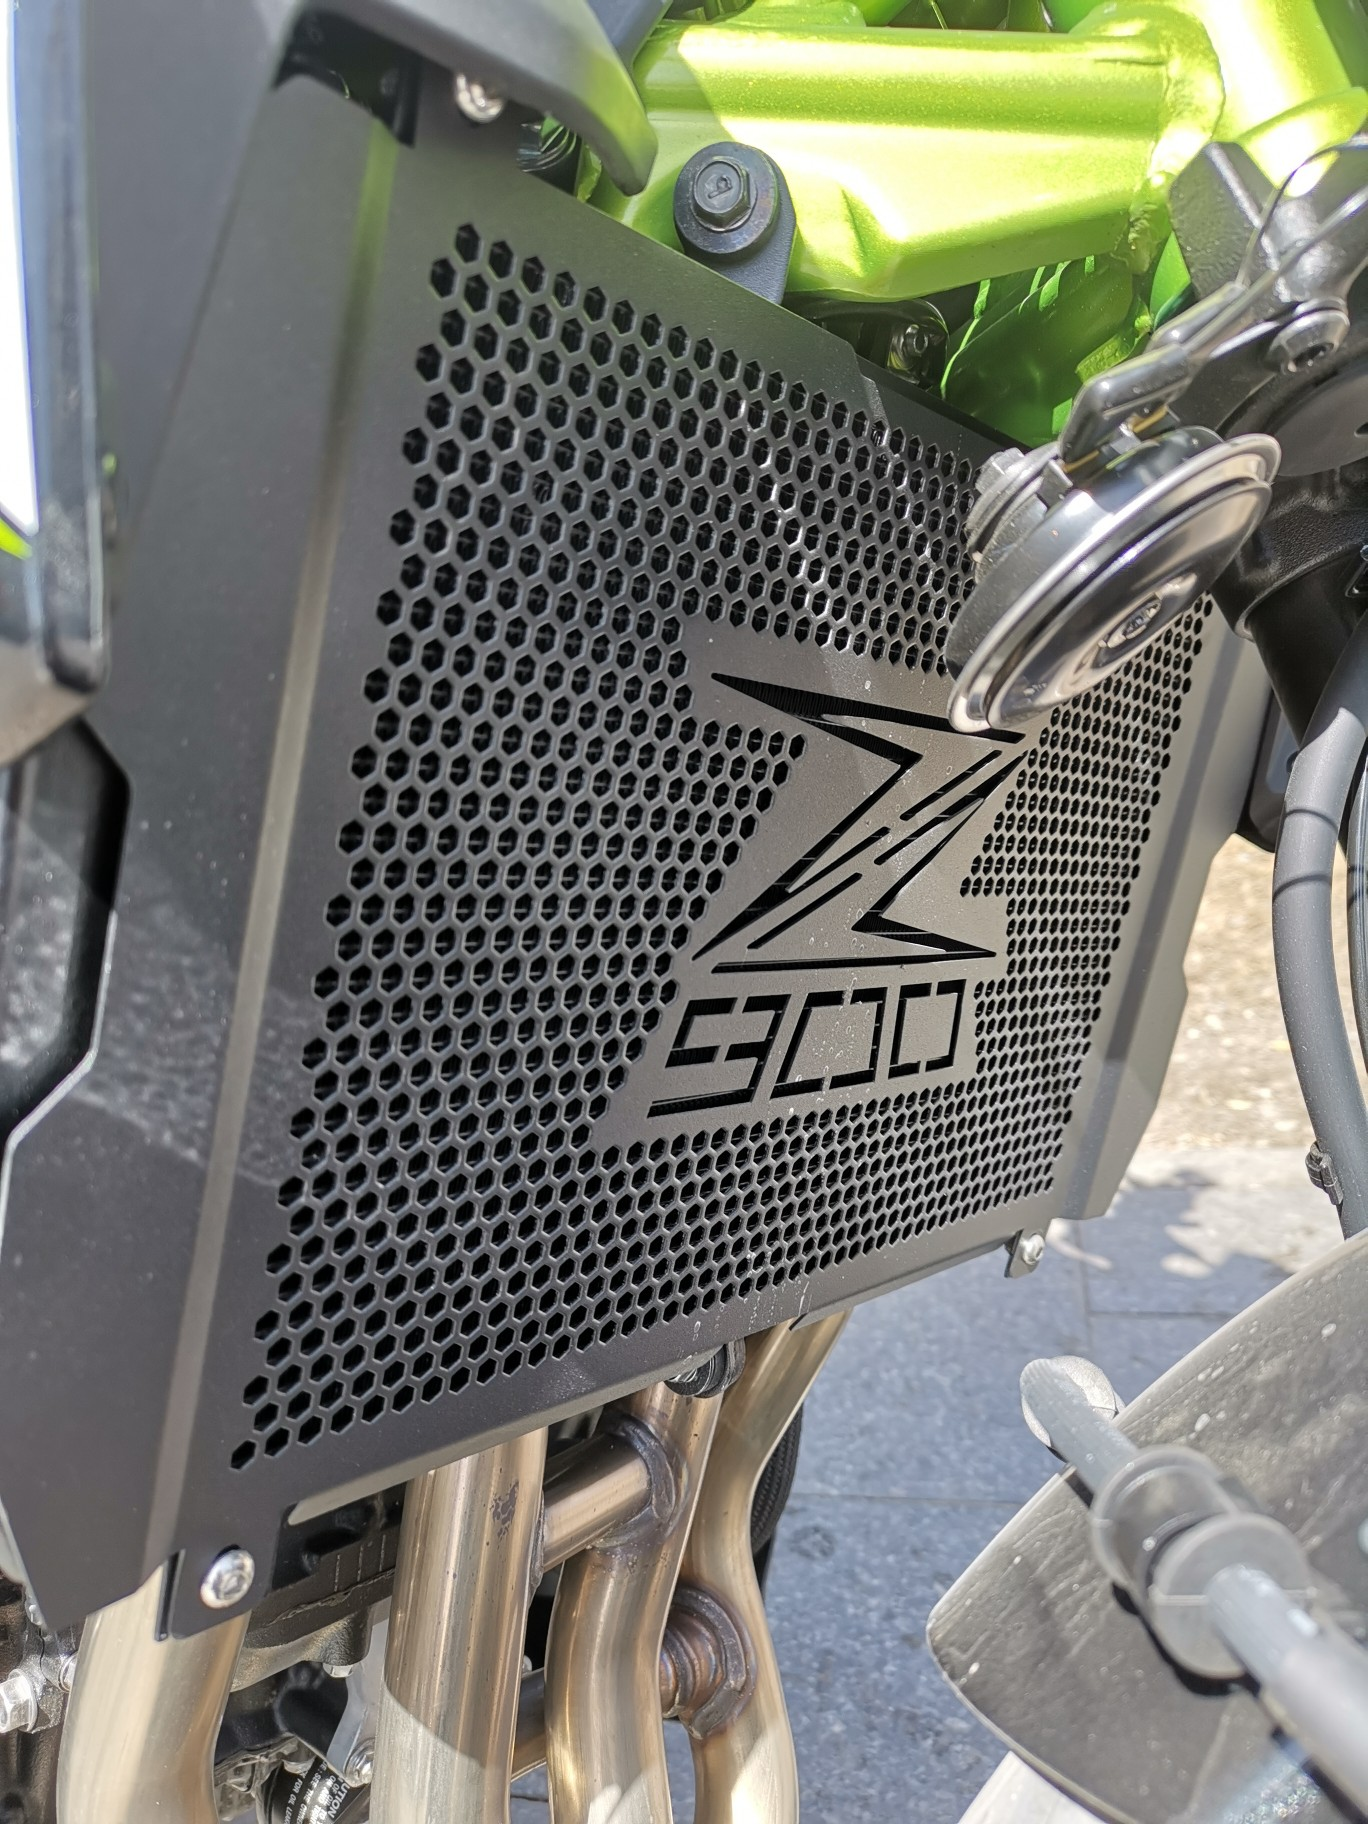 Image 5 - For Kawasaki Z900 Z 900 New Motorcycle Radiator Grille Guard  Protection For Kawasaki Z900 Z 900 2017 2018 2019 2020  AccessoriesCovers